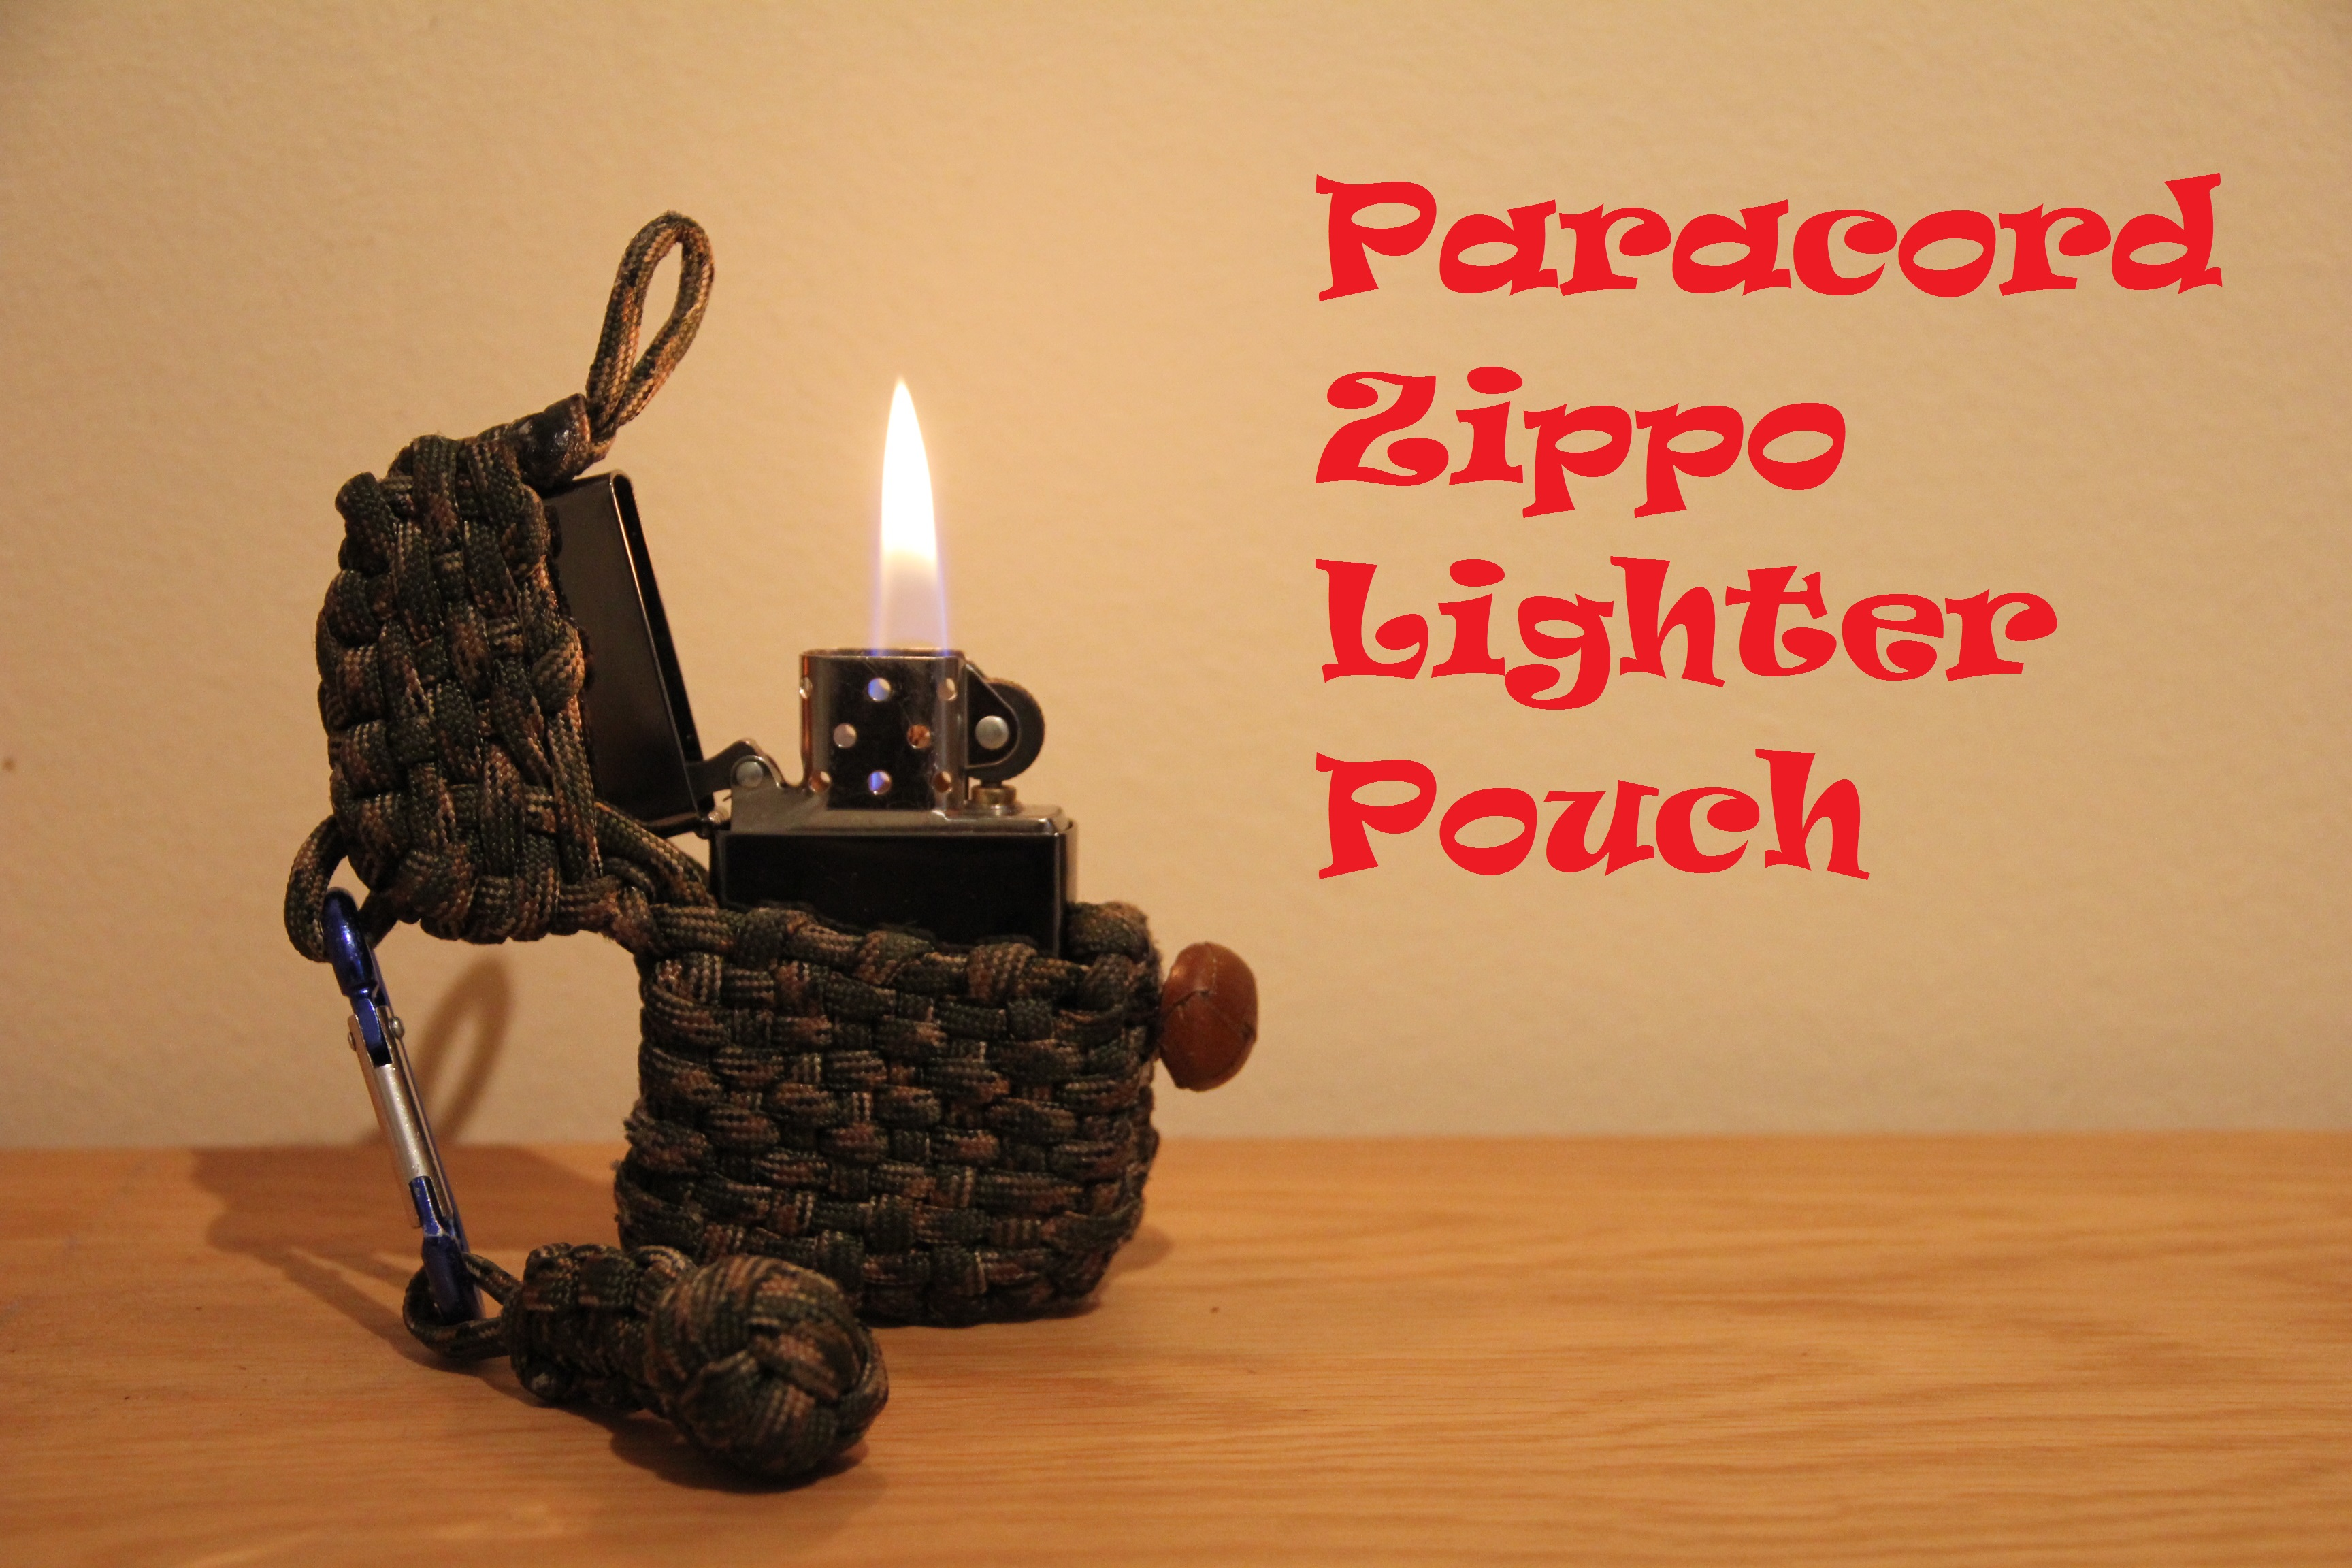 Paracord Zippo Lighter Pouch